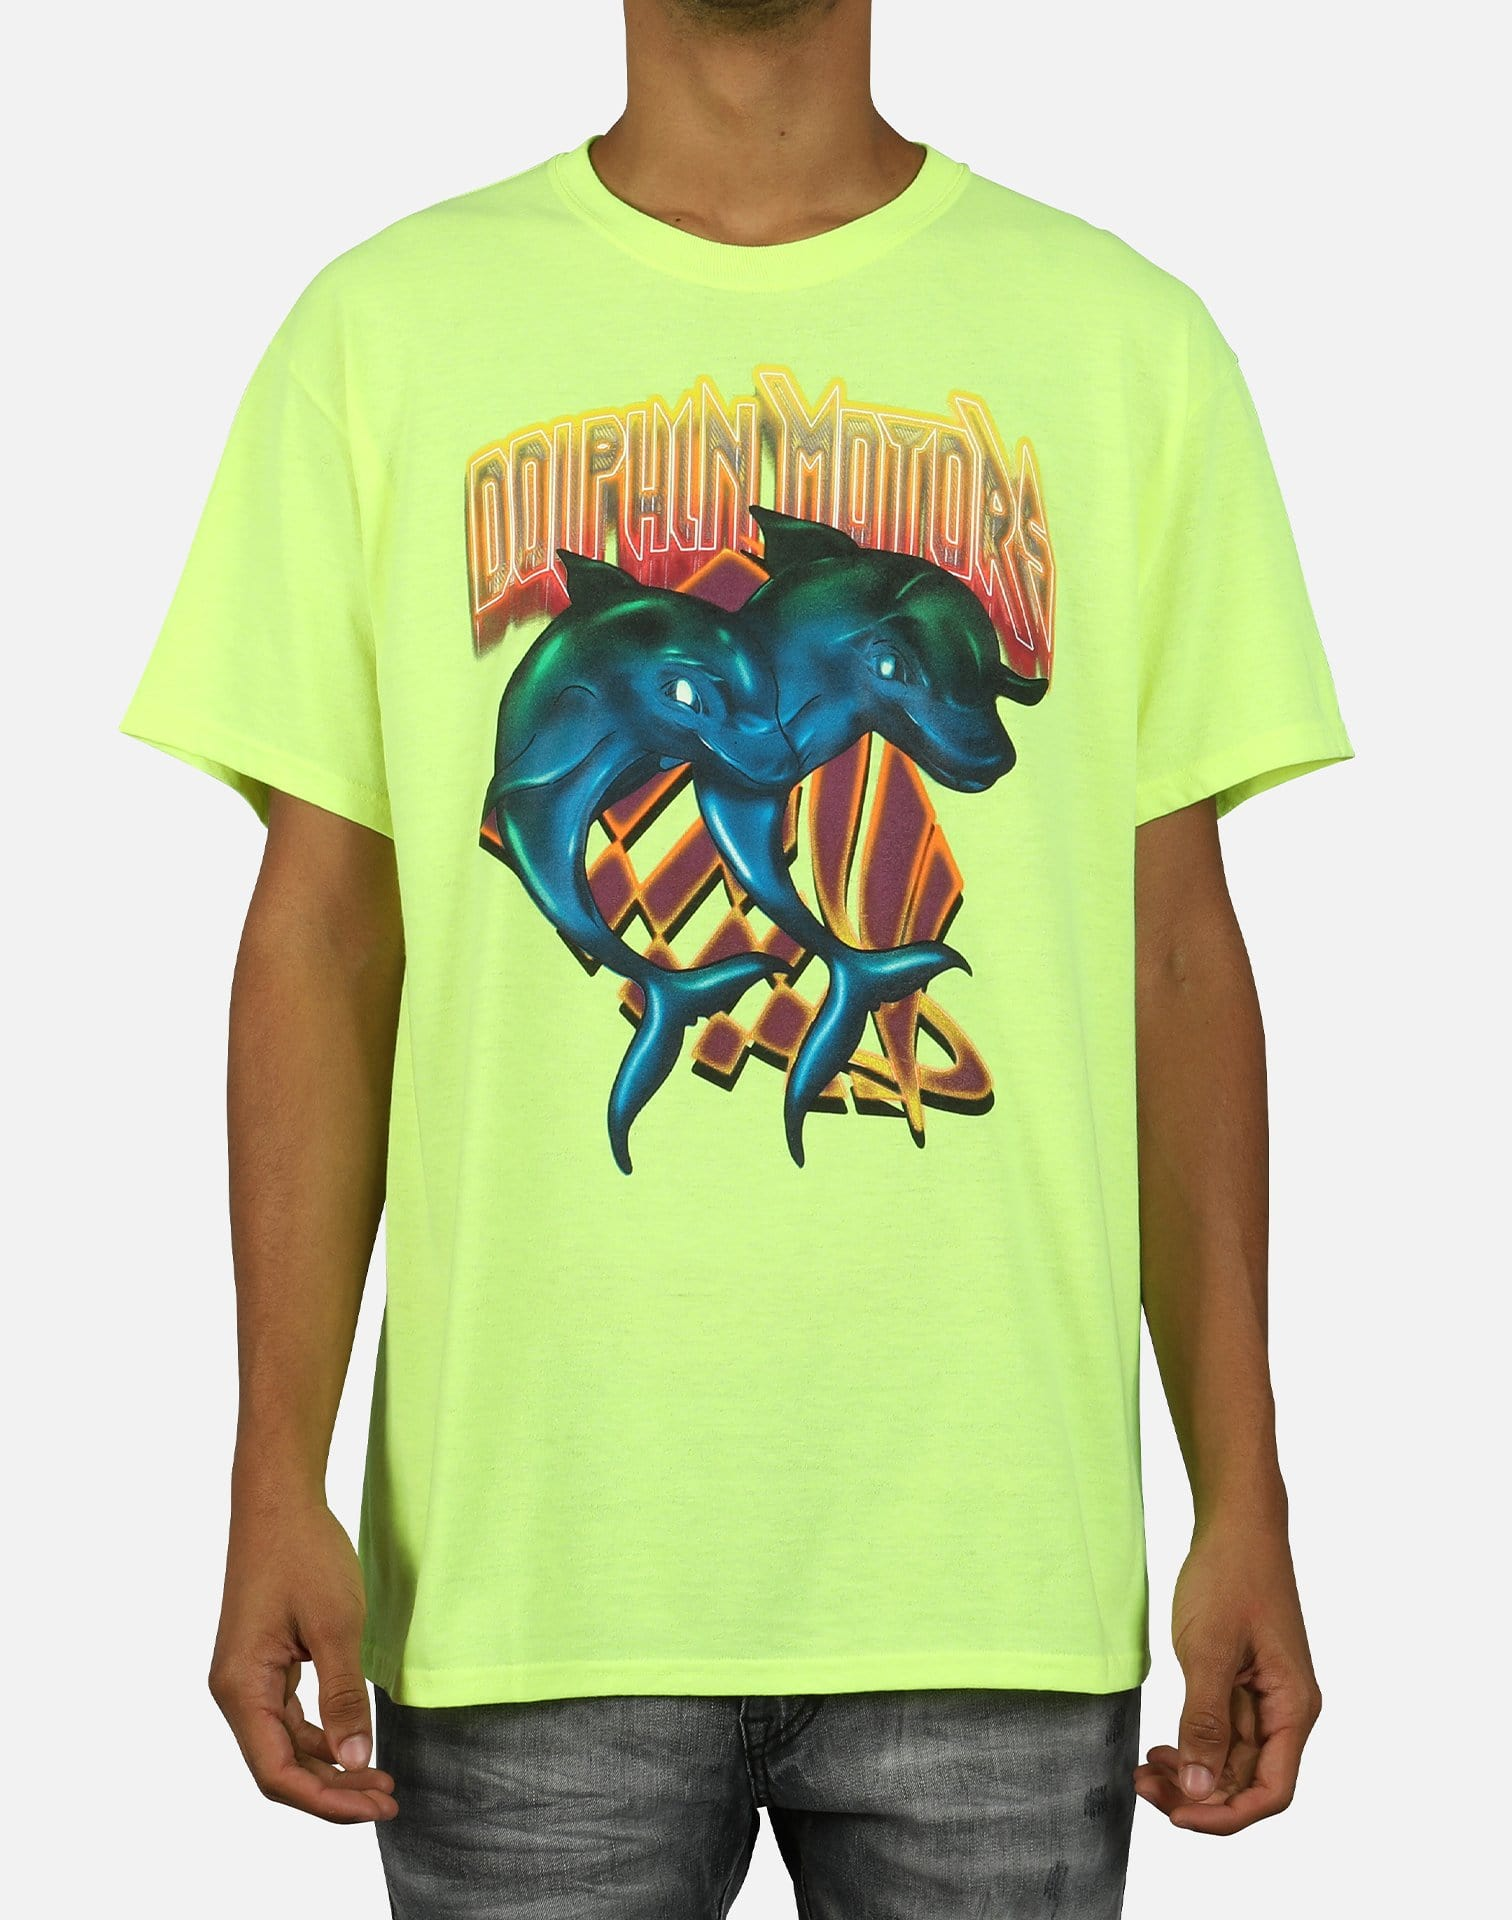 Pink Dolphin Men's Double Dolphin Tee